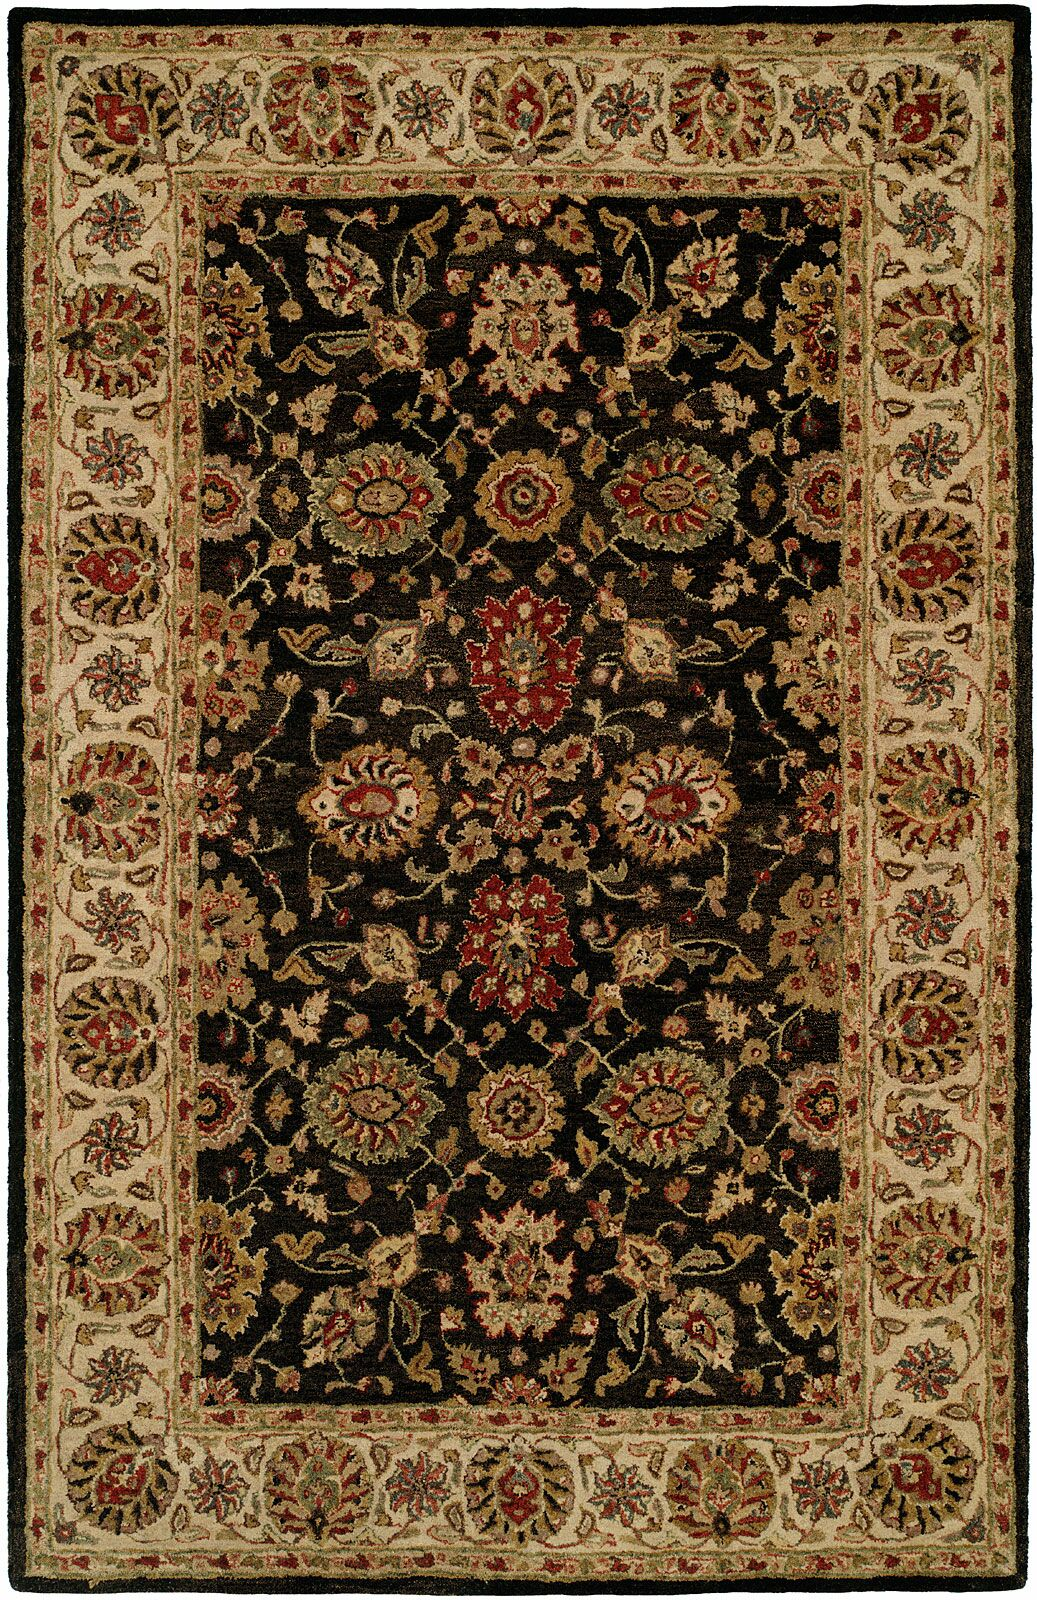 Bumb Hand-Woven Black/Brown Area Rug Rug Size: Rectangle 5' x 8'